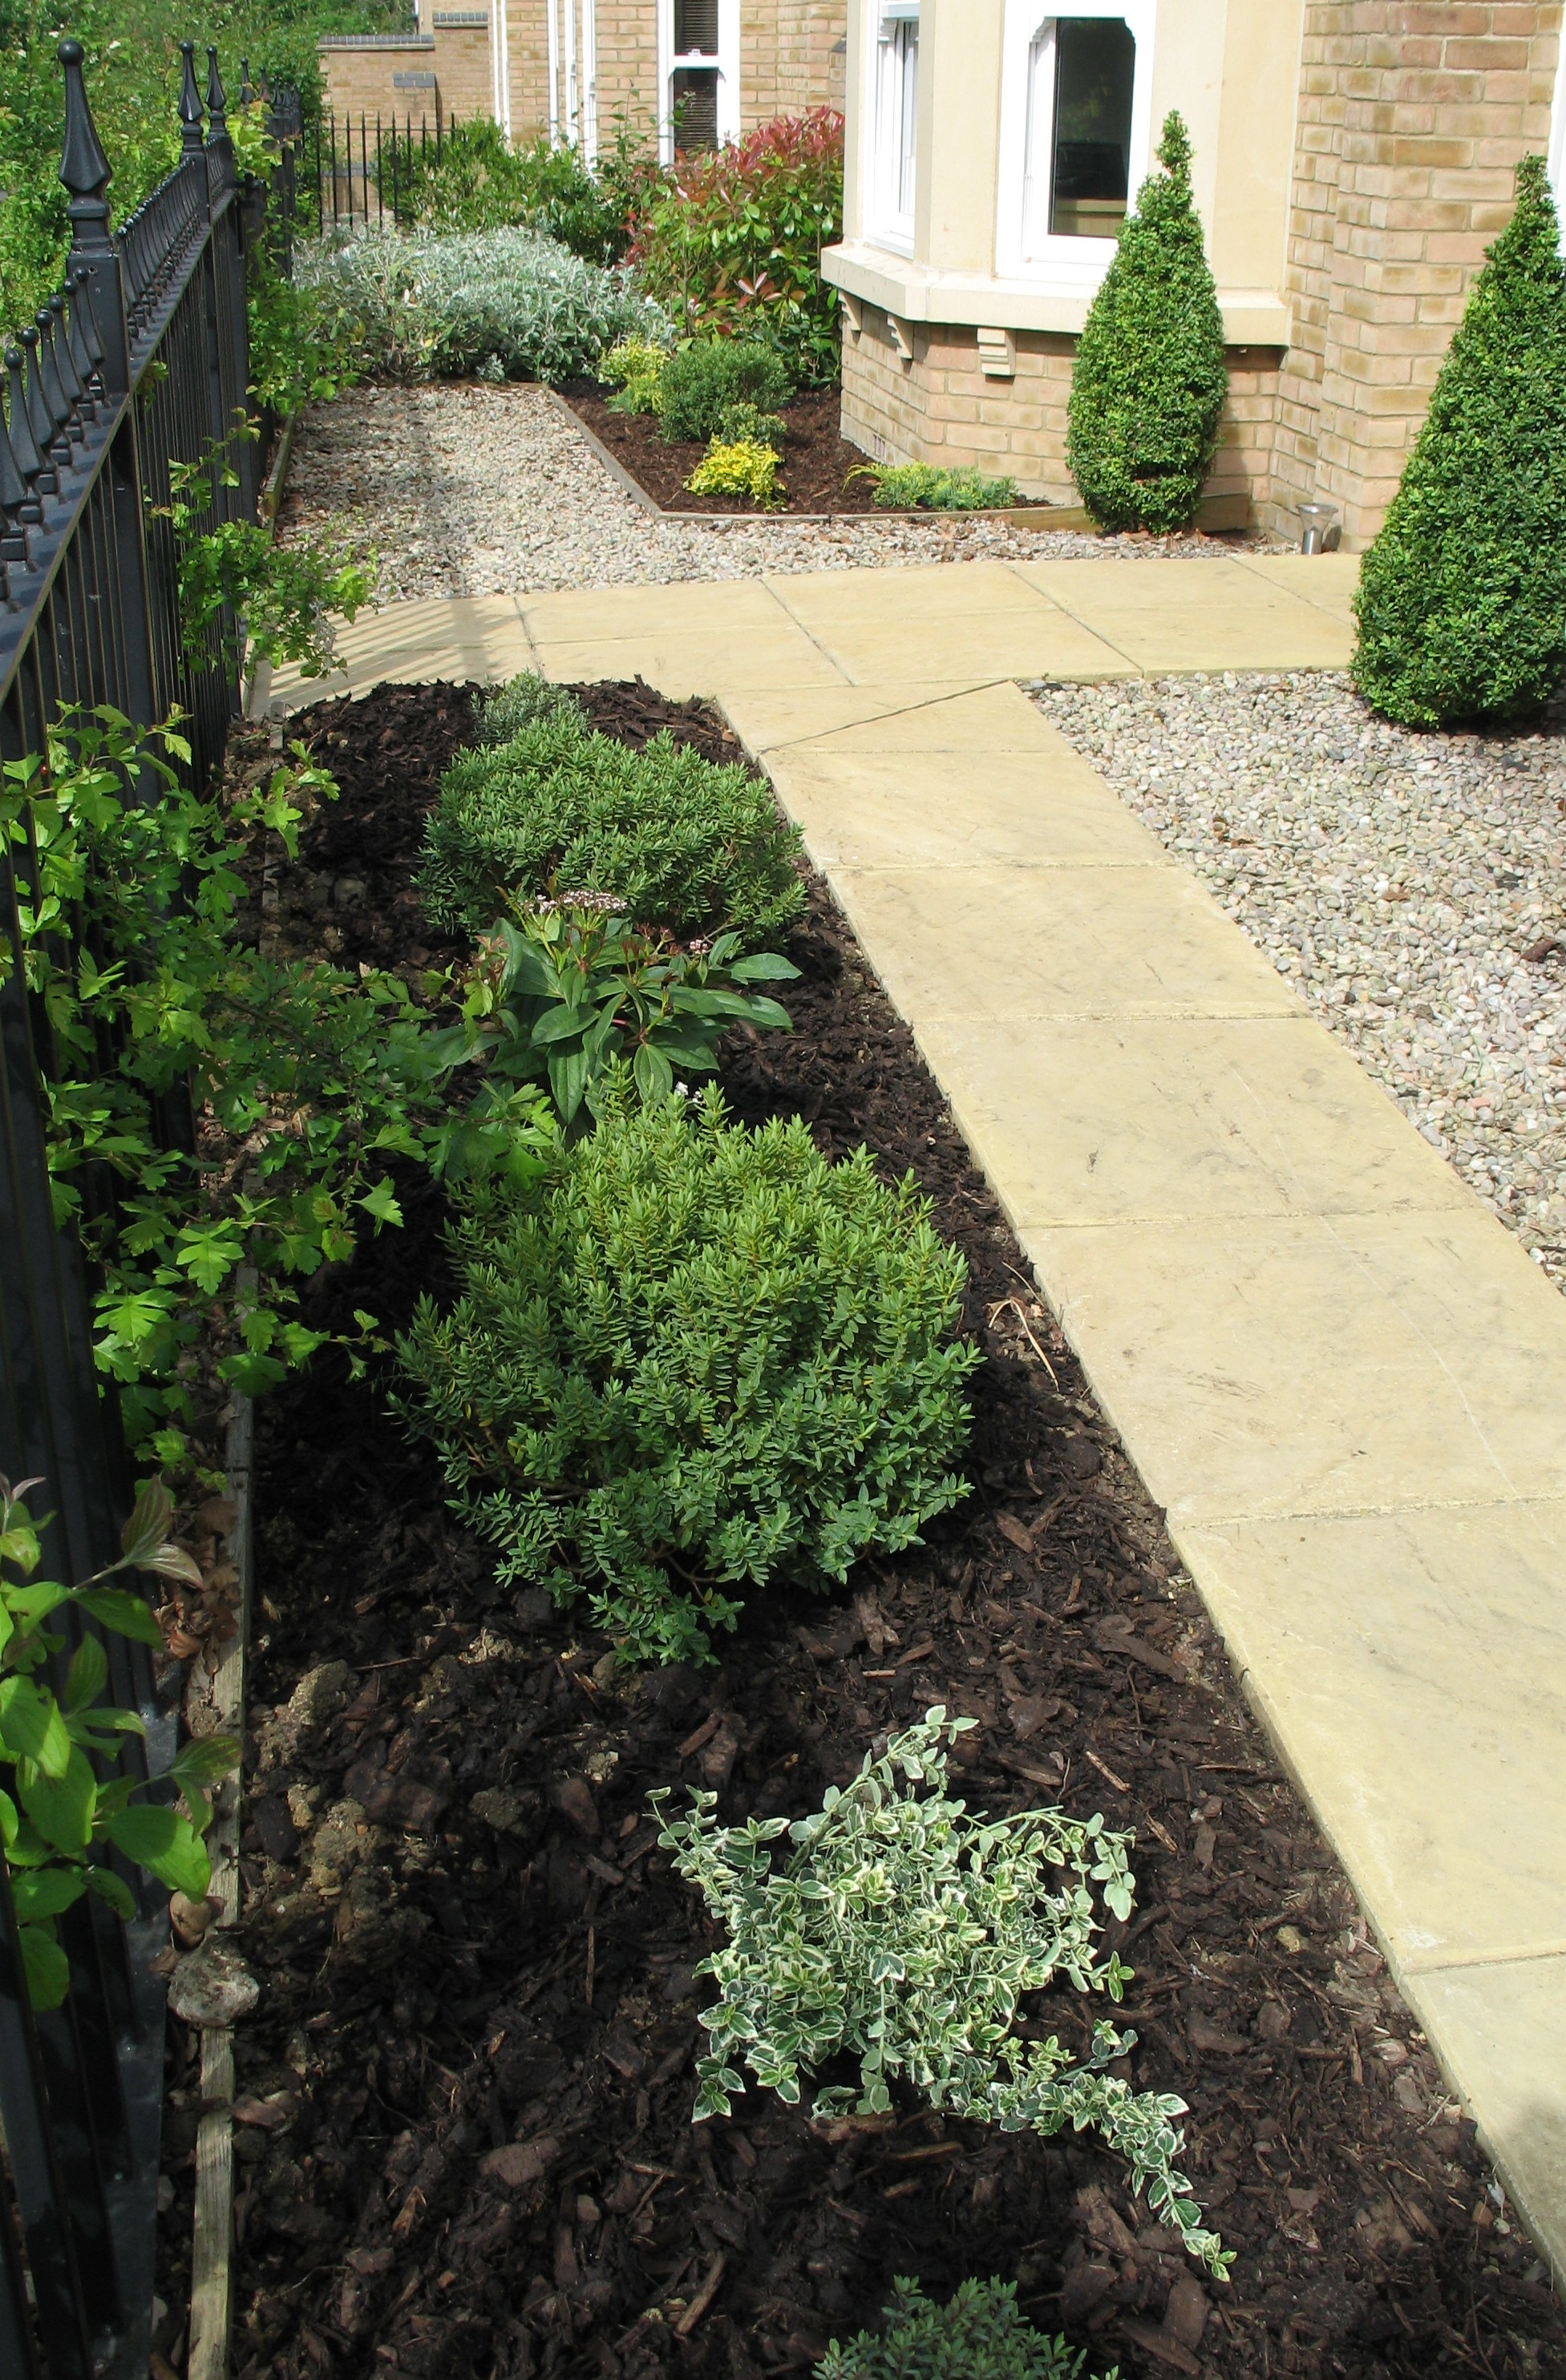 Easy plants for a front garden karen tizzard garden design for Small front garden designs uk